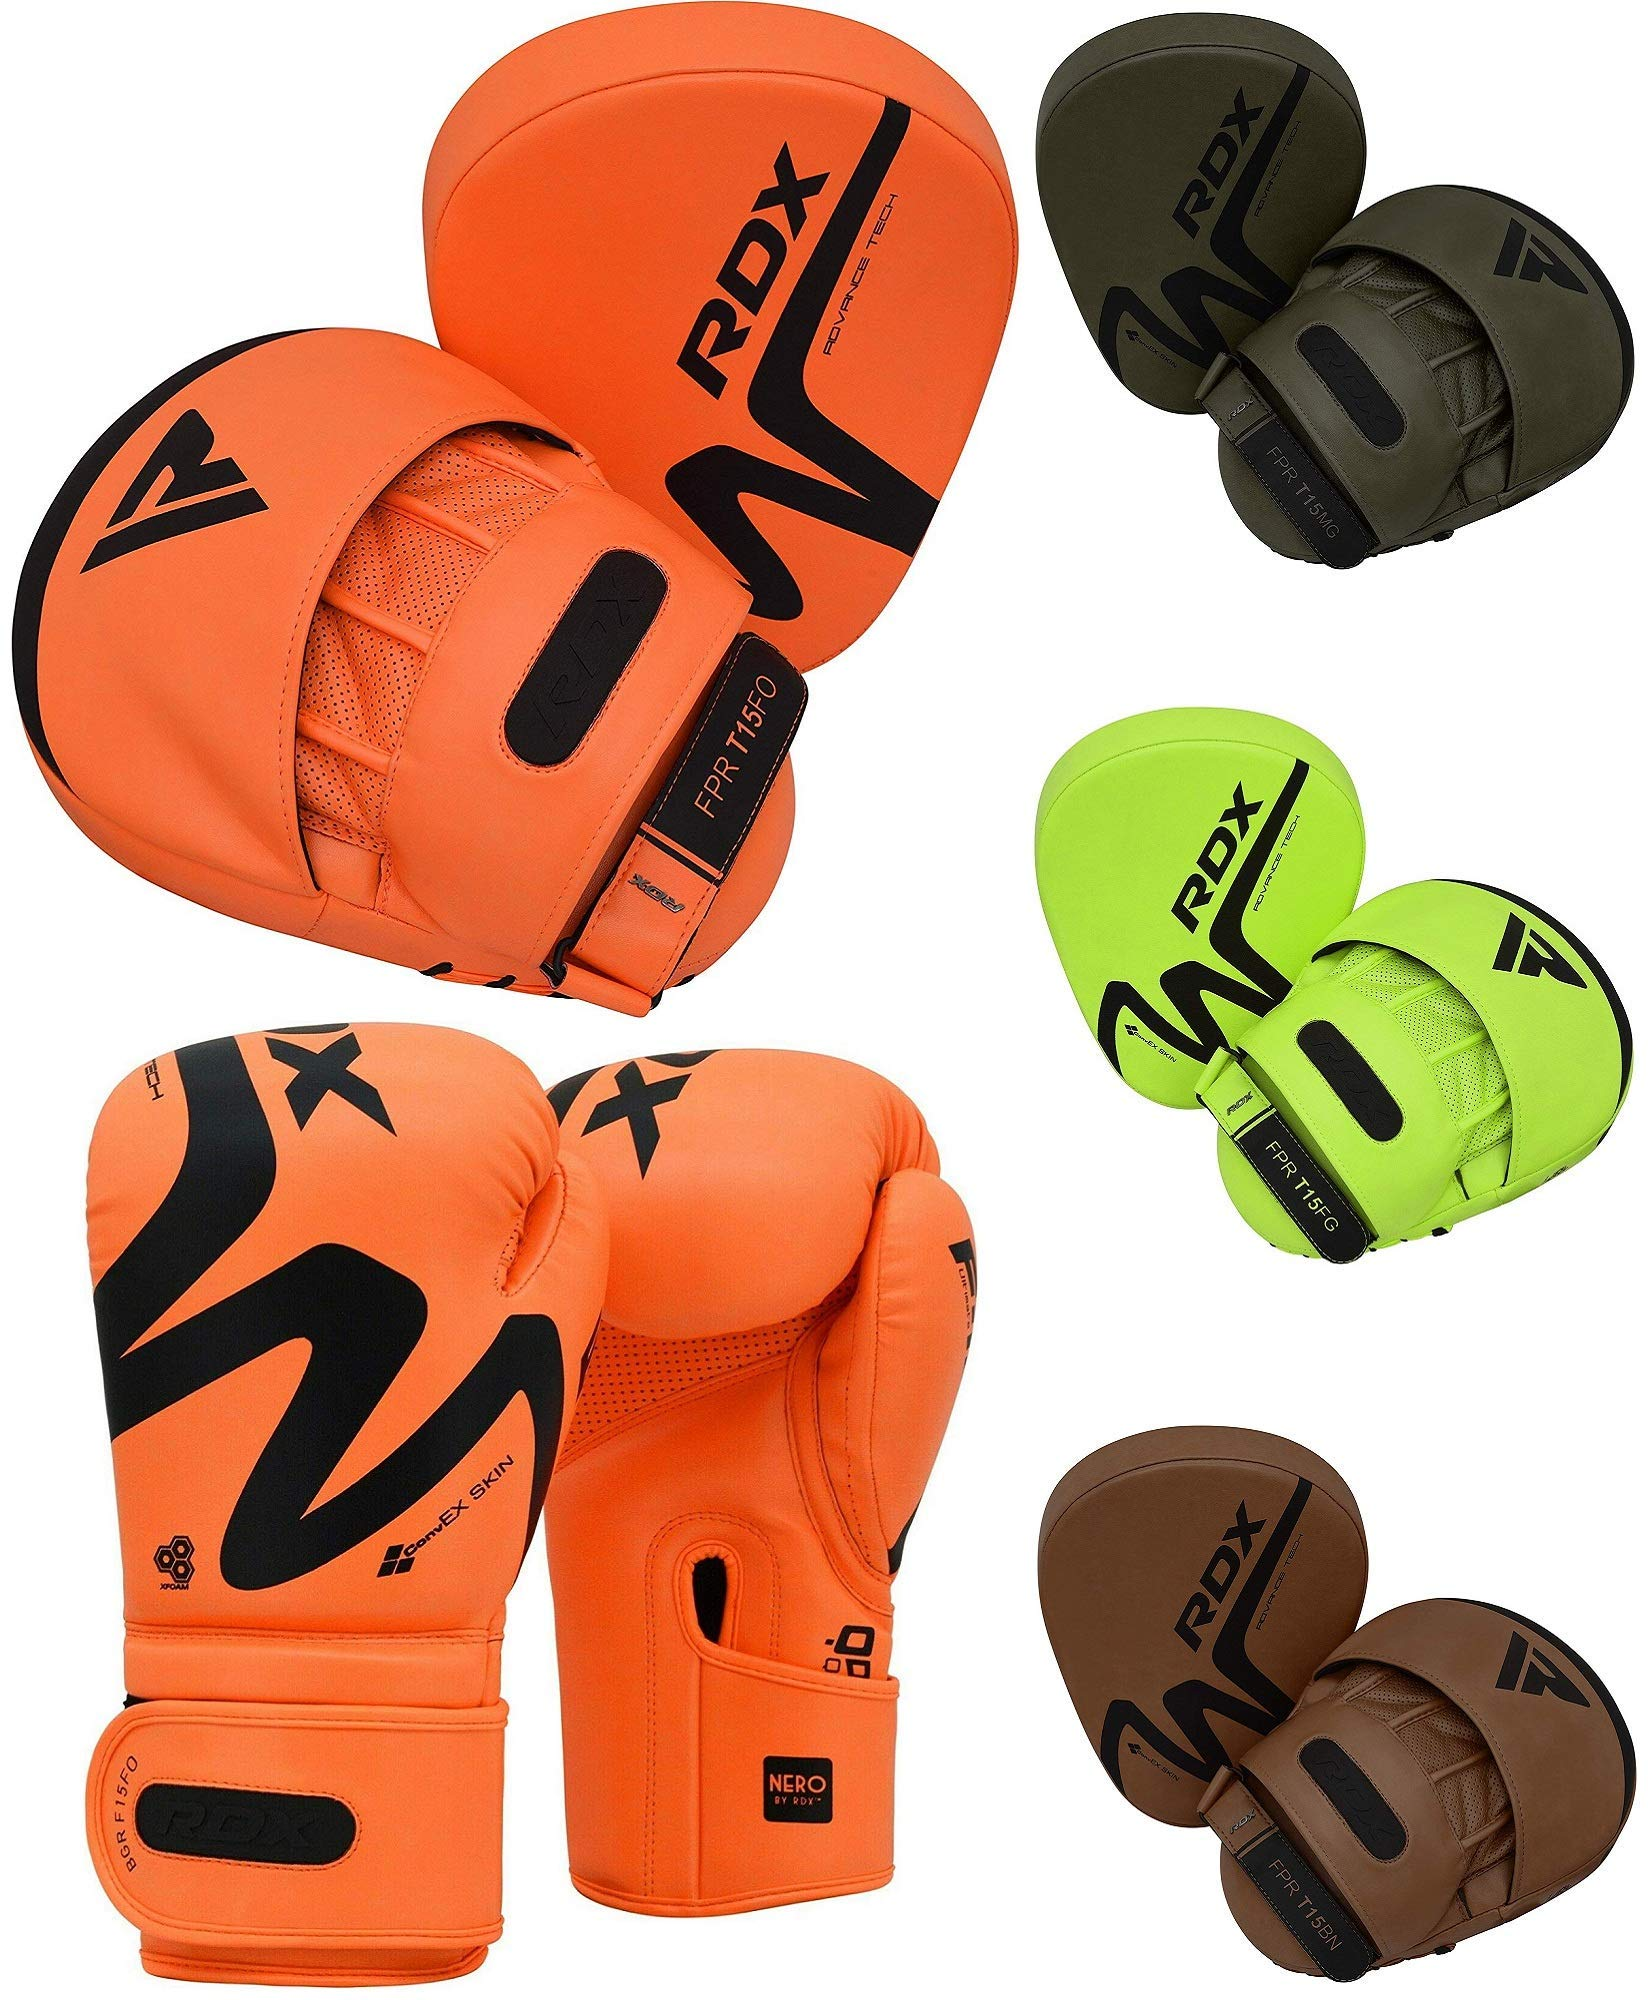 RDX MMA Gloves for Martial Arts Training & Grappling | Approved By SMMAF | Palm-O Maya Hide Leather Sparring Mitts | Good for Kickboxing, Muay Thai, Cage Fighting, Punching Bag & Combat Sports